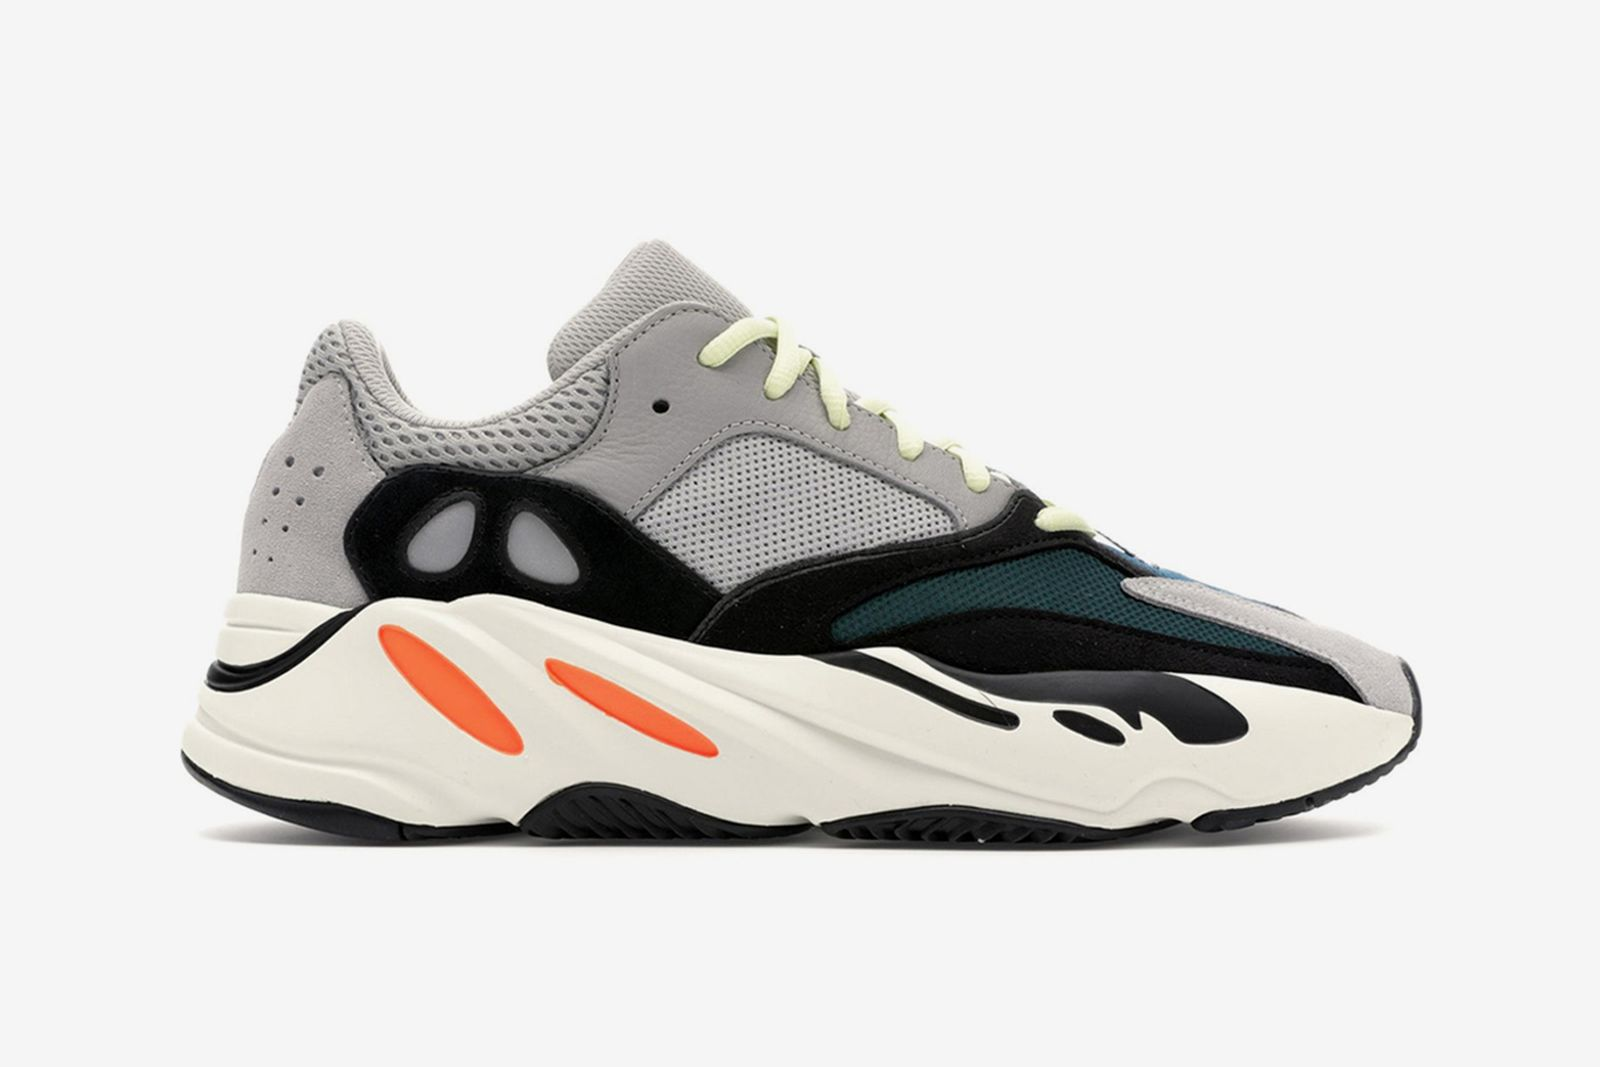 adidas yeezy guide 14 adidas yeezy guide wave runner 700 StockX Grailed adidas Originals ebay